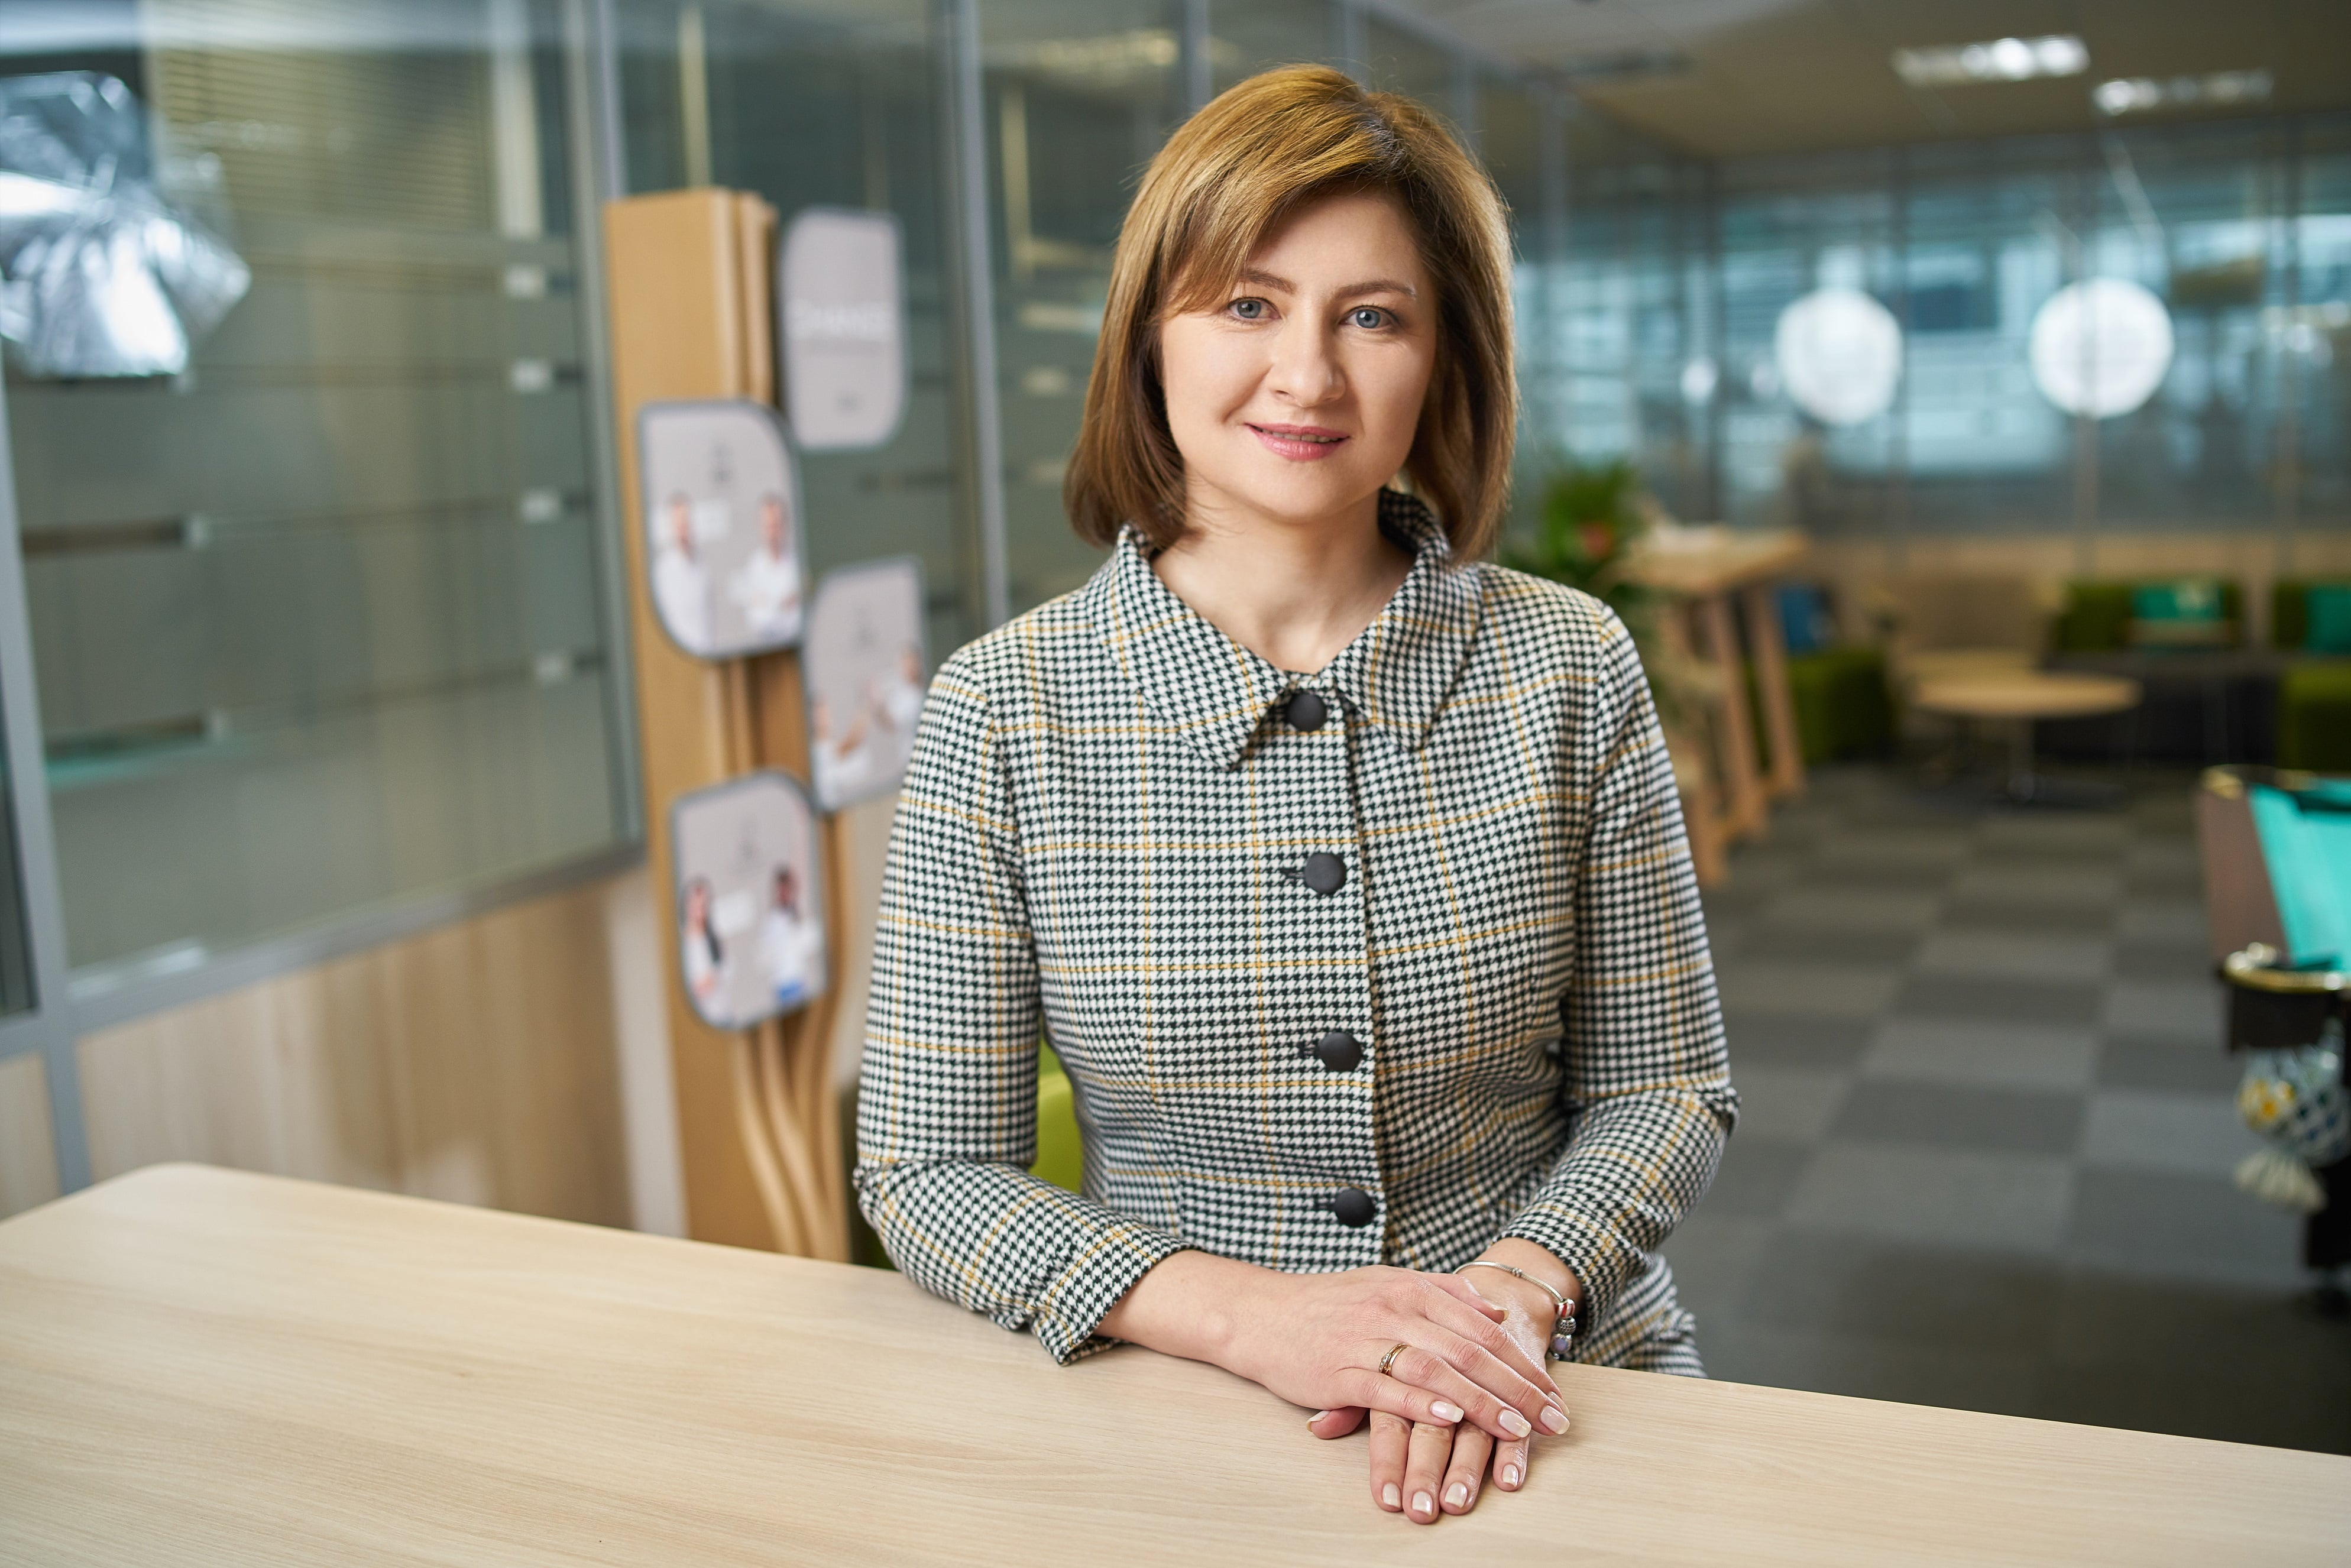 CULTURE PROGRAM: Irina Vladimirova from 'Philip Morris Ukraine' on innovations in HR, motivation of employees and nurturing of professionals in the company